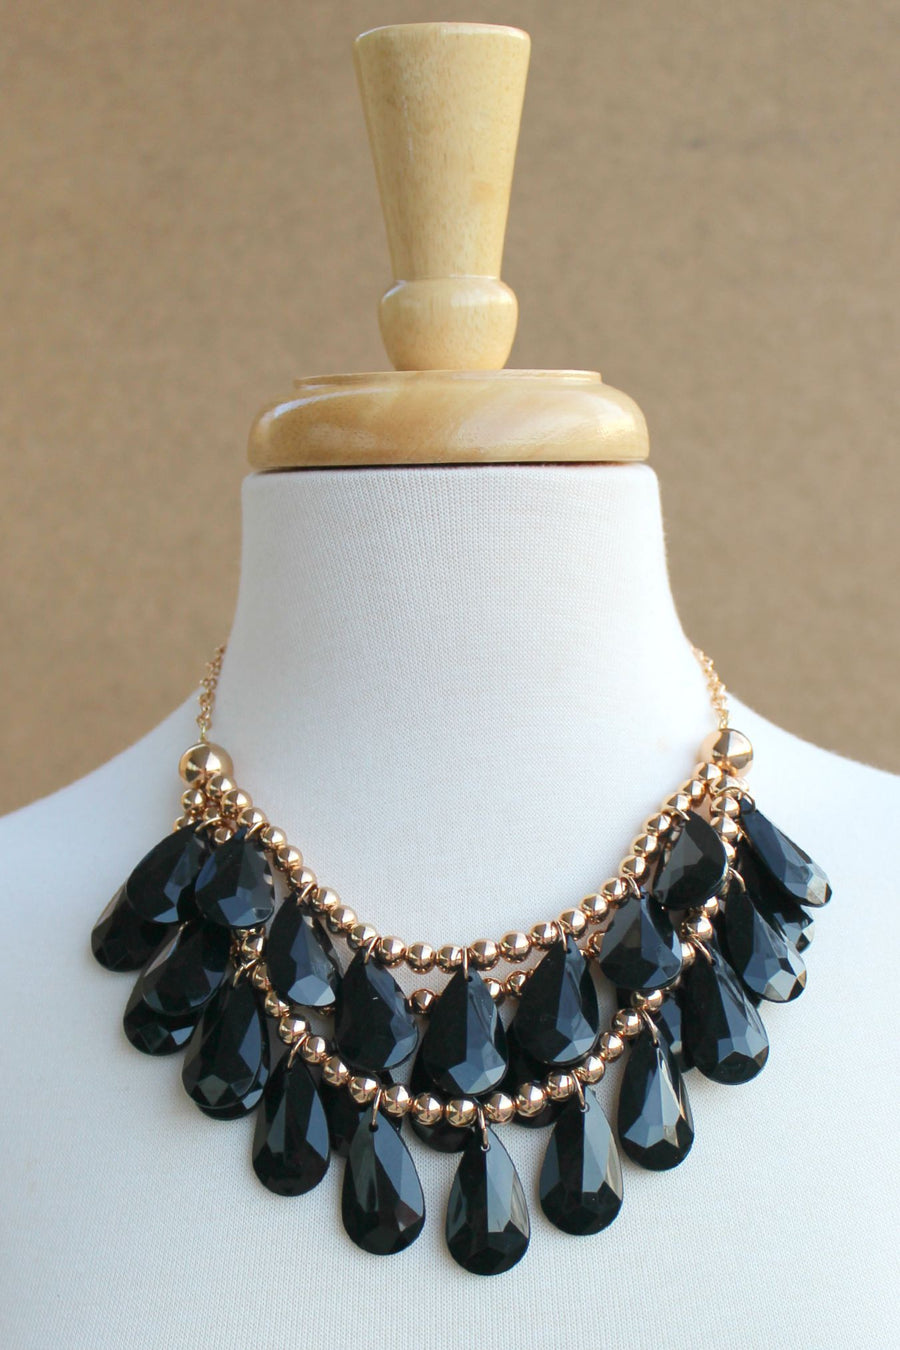 Three Layered Teardrop Statement Necklace, Black